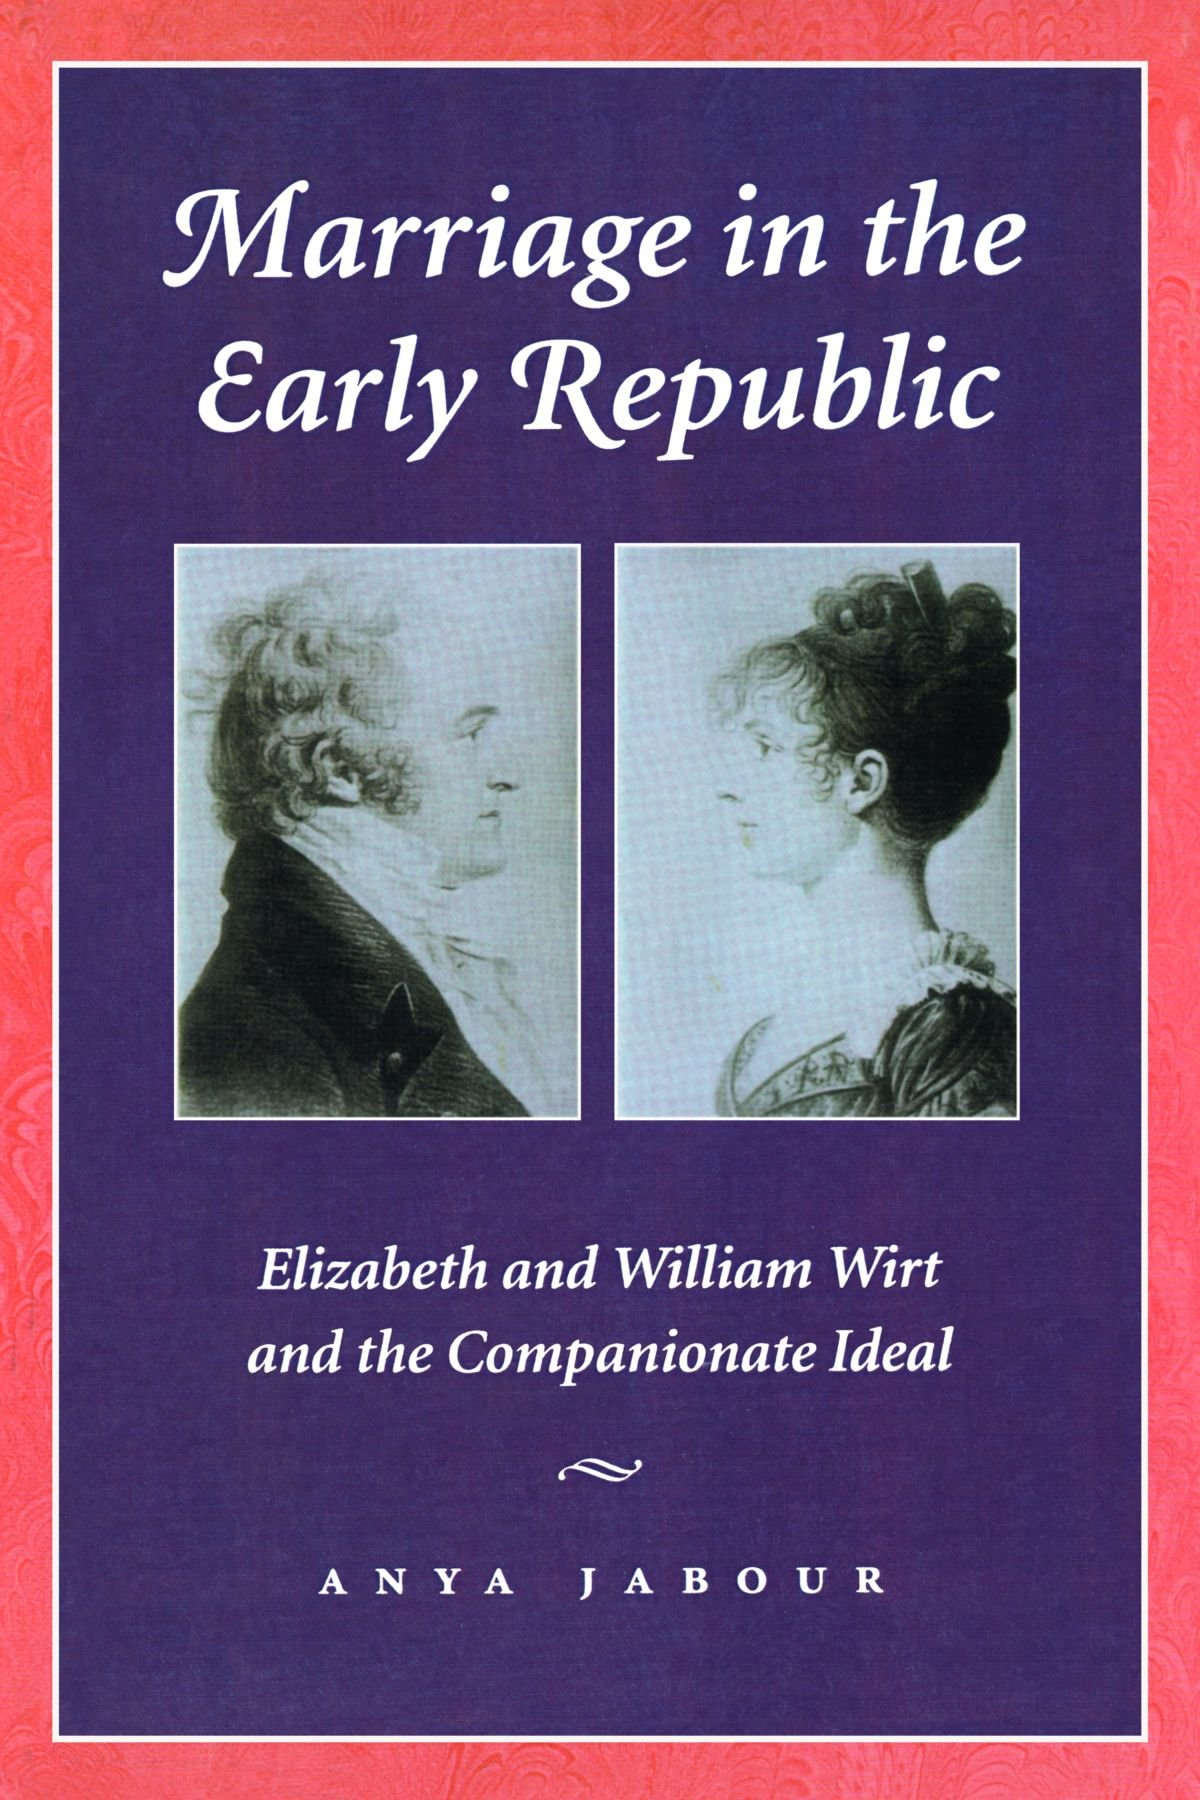 Read Online Marriage in the Early Republic: Elizabeth and William Wirt and the Companionate Ideal (Gender Relations in the American Experience) PDF